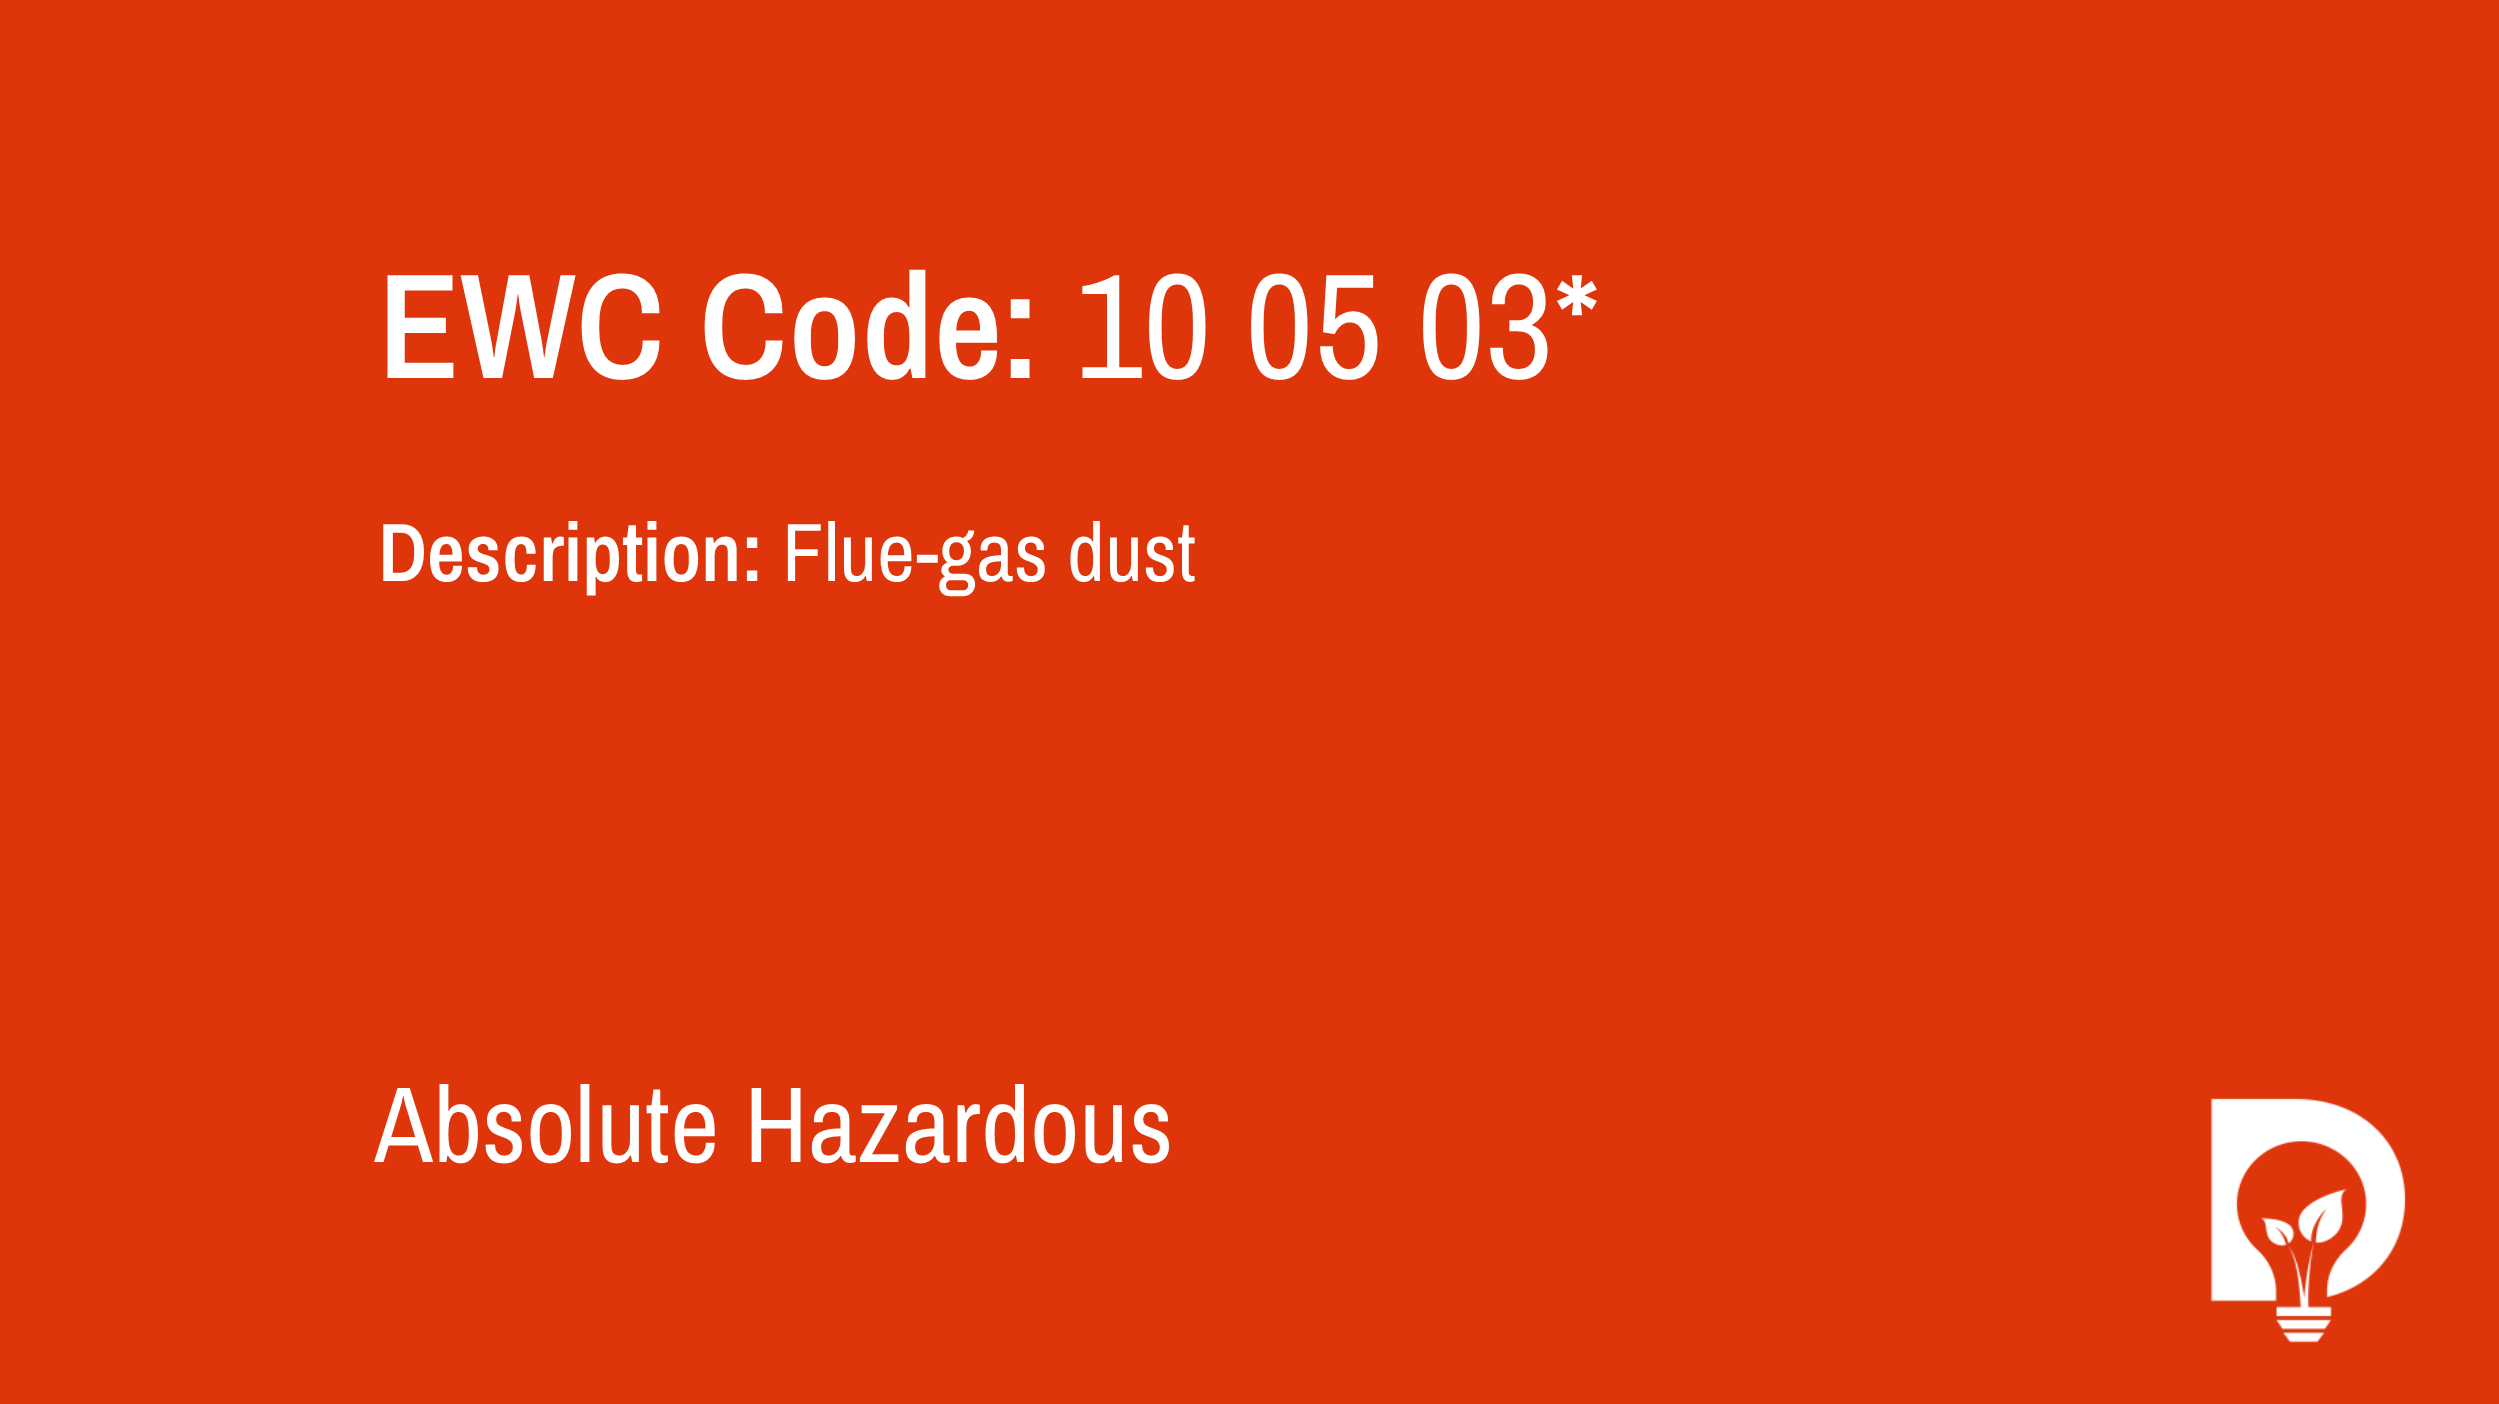 EWC Code: 10 05 03* - flue-gas dust. Type: Absolute Hazardous. Image by Dsposal